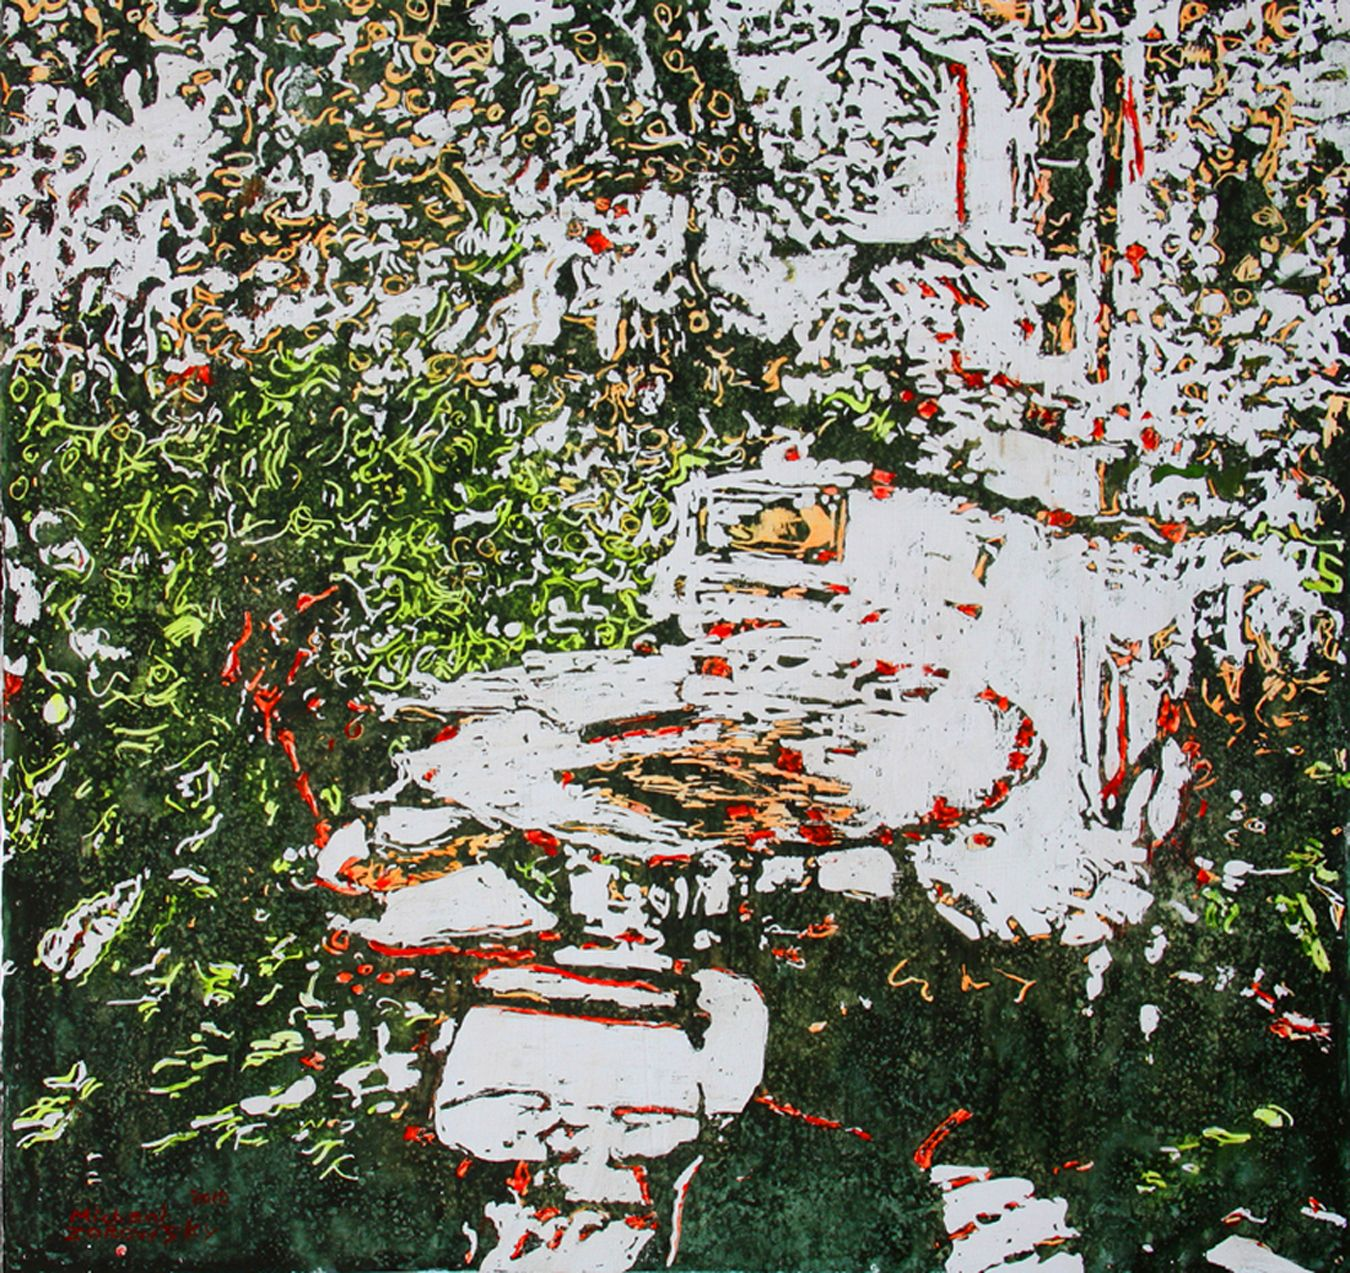 """Secluded backyard Paris (7) 22"""" x 24""""  x 1 3/4"""" .micheal zarowsky / Mixed media (watercolour / acrylic painted directly on gessoed birch panel) Available $1500.00"""